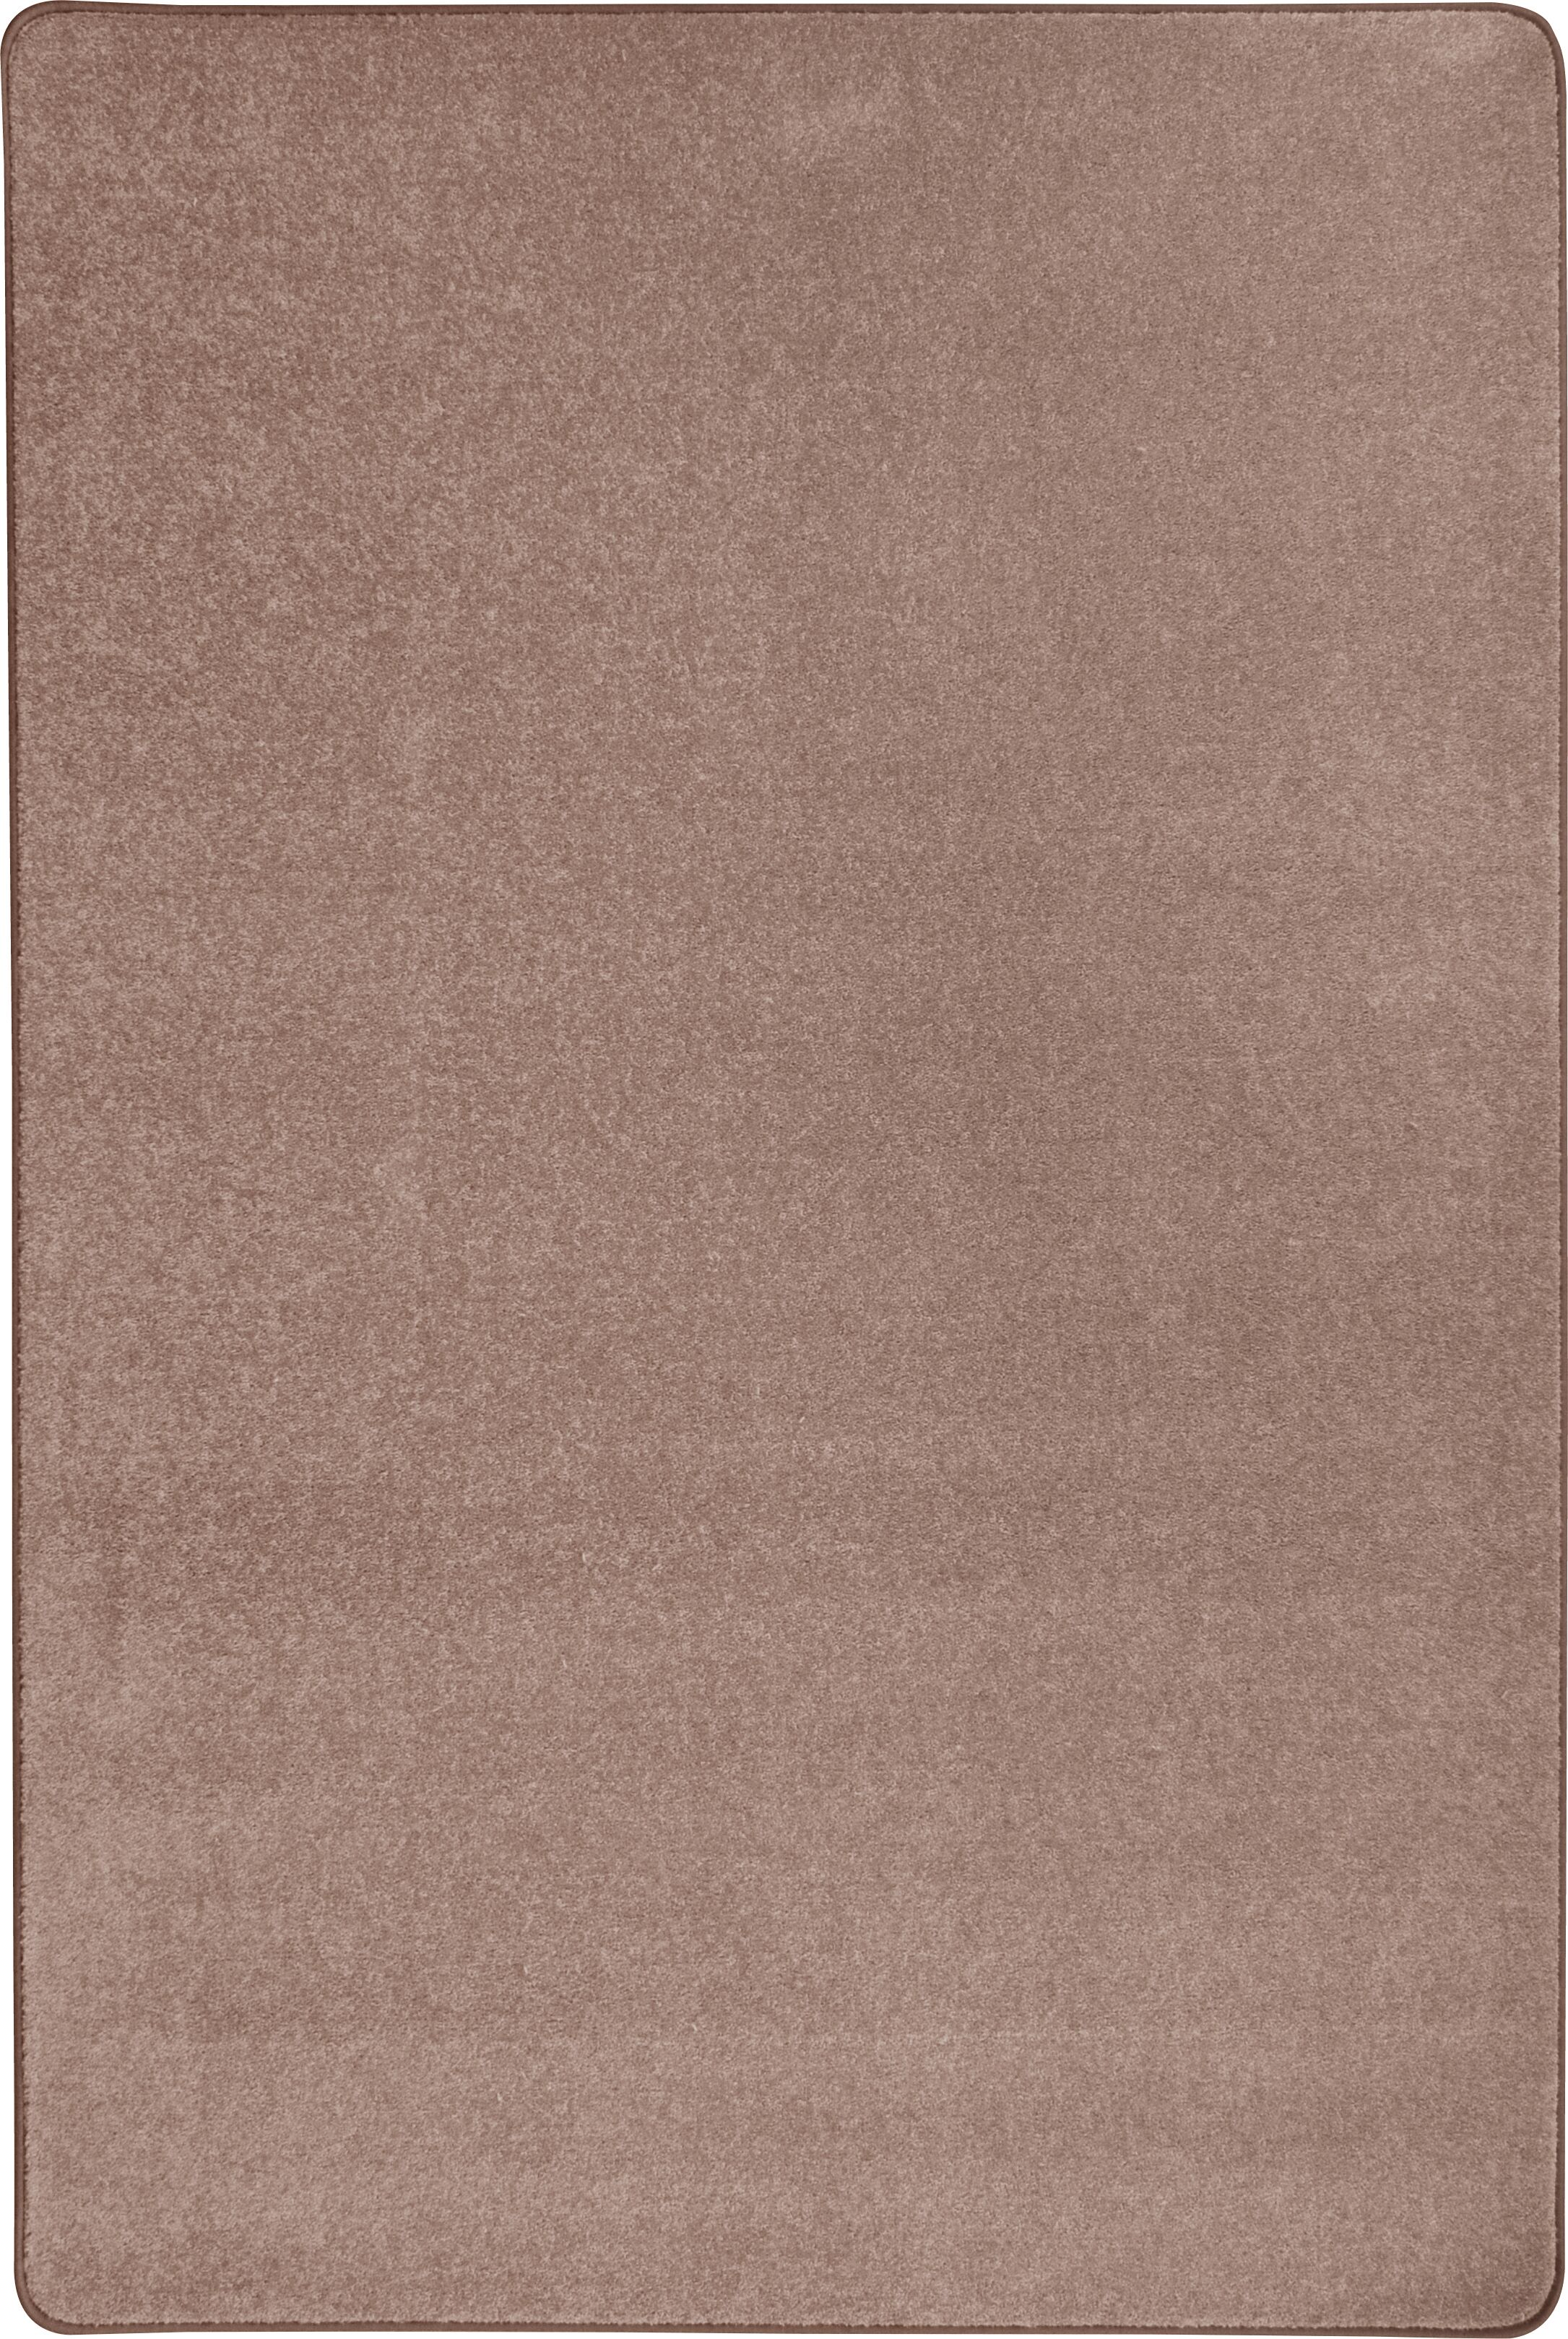 Taupe Area Rug Rug Size: Rectangle 8' x 12'